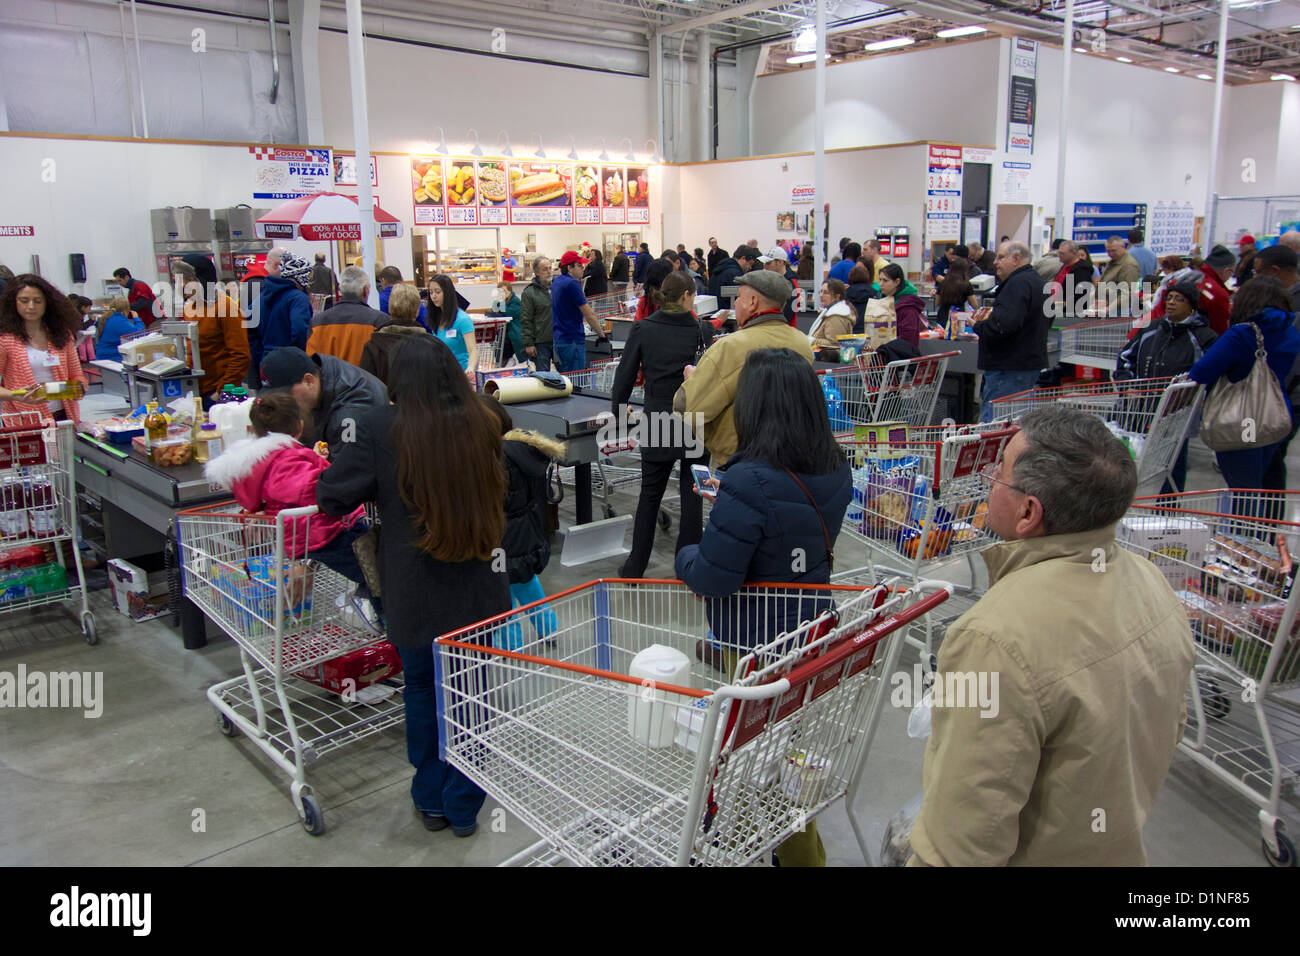 costco whole stock photos costco whole stock images alamy costco shoppers lined up at checkout lanes stock image